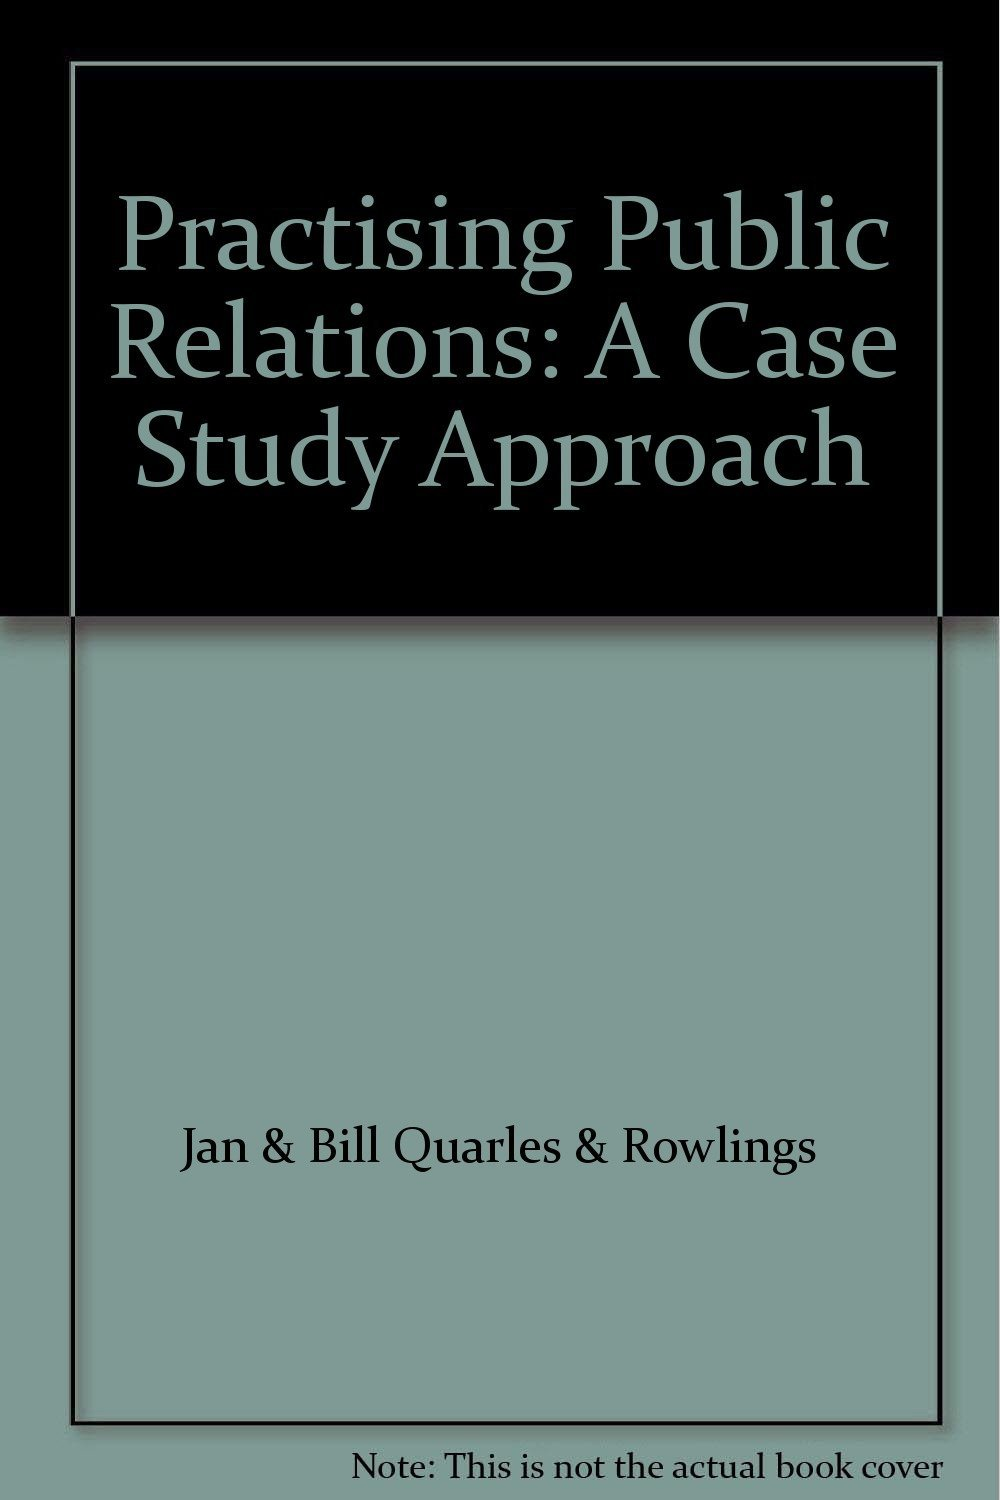 Practising Public Relations:A Case Study Approach: A Casebook Approach